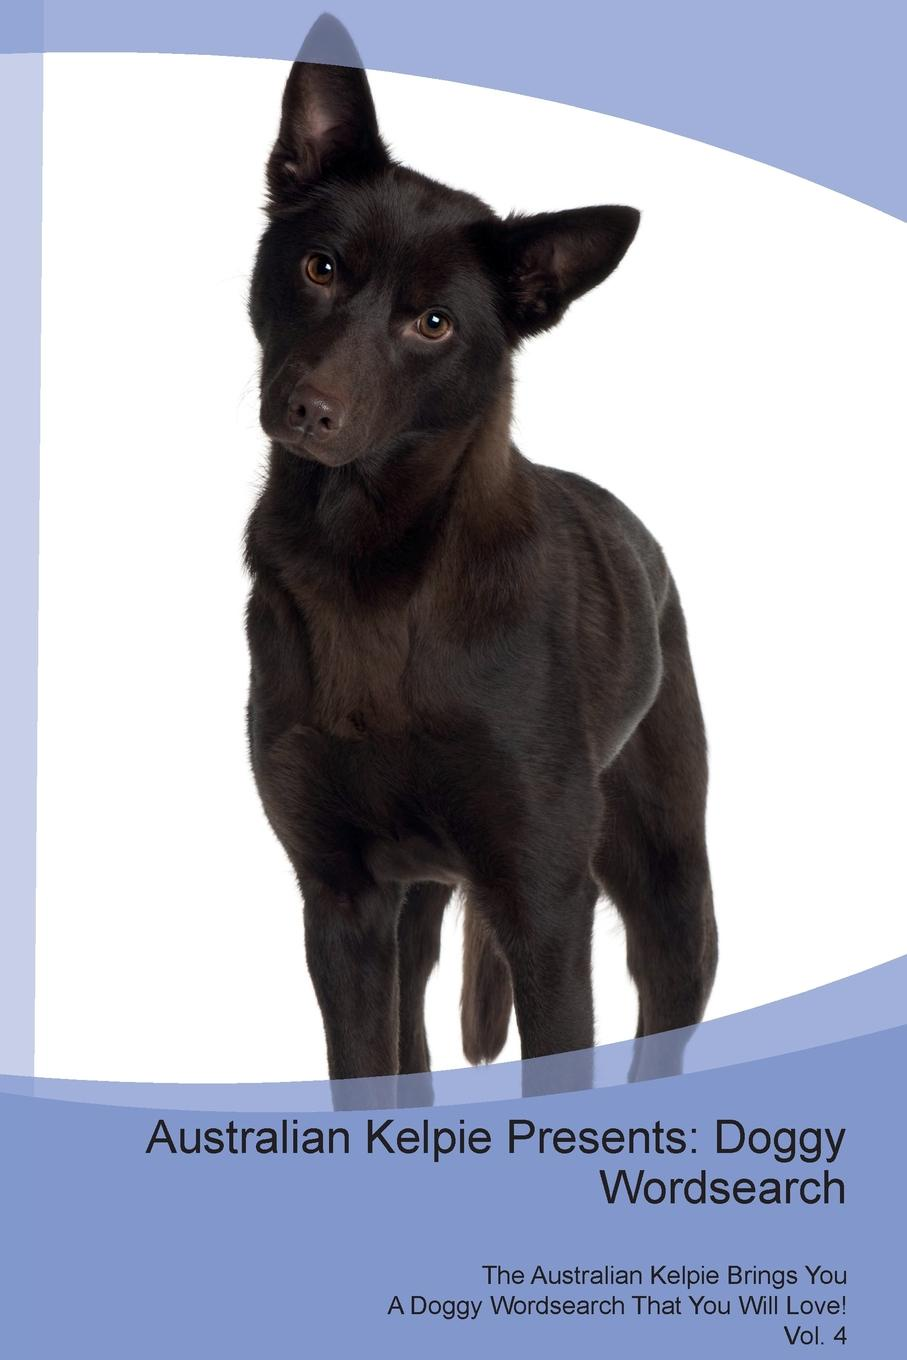 Doggy Puzzles Australian Kelpie Presents. Wordsearch The Brings You A That Will Love! Vol. 4